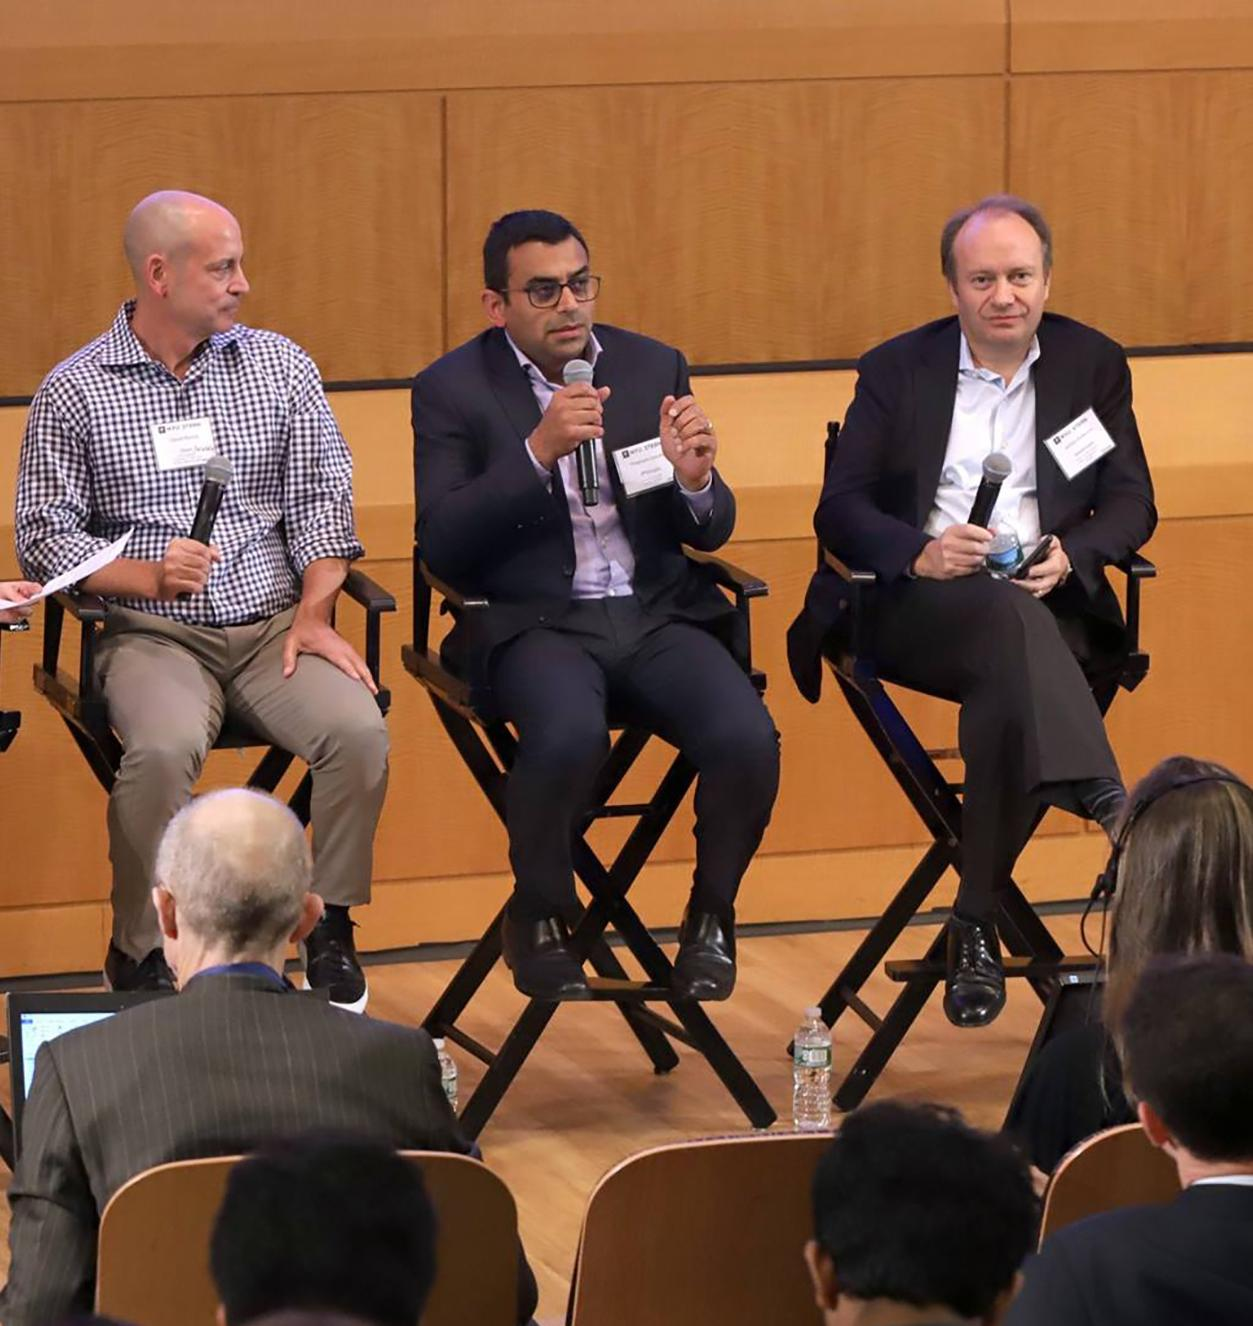 Panelists speaking at the FinTech conference